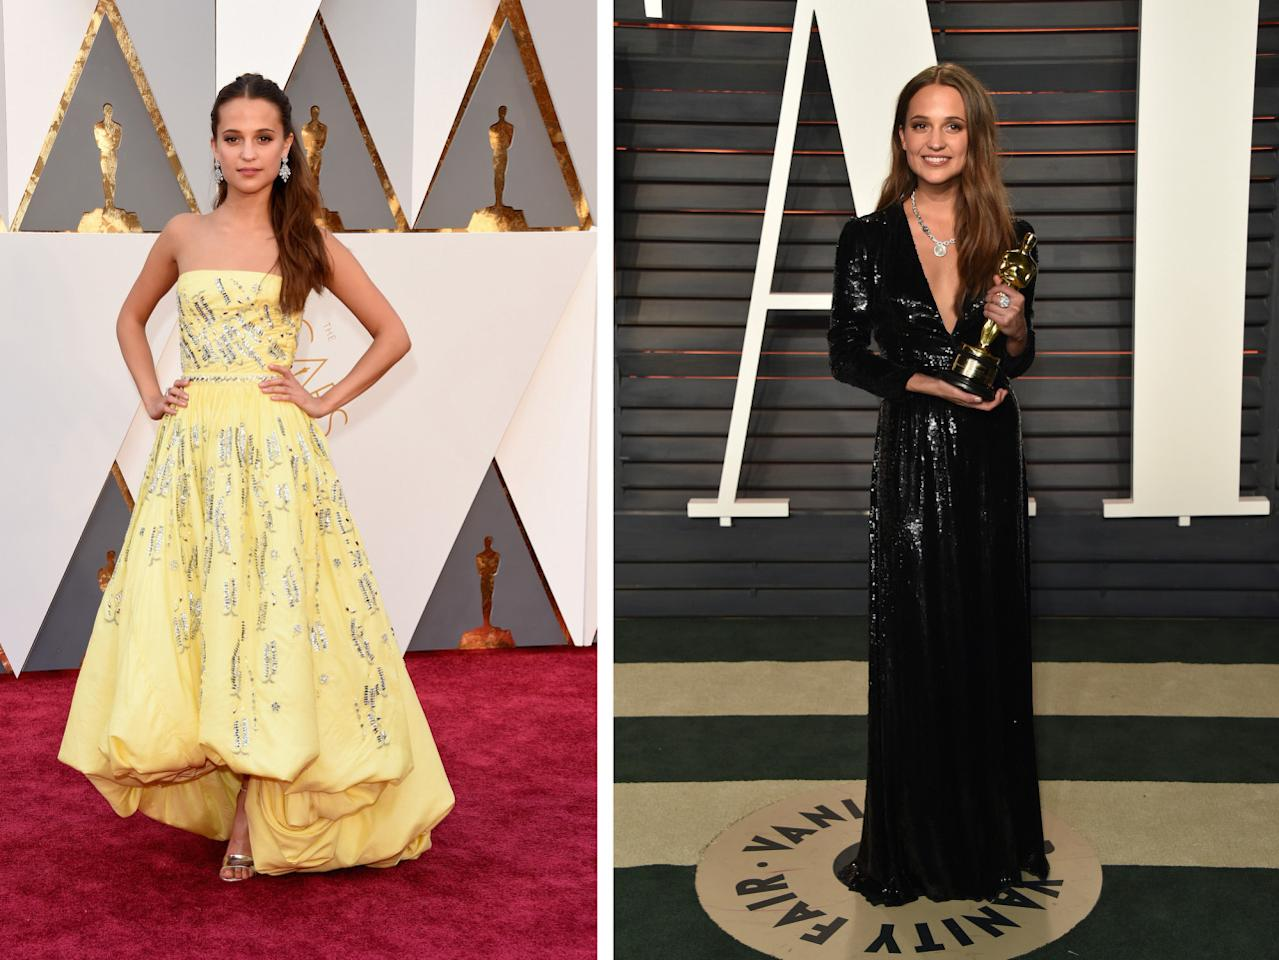 <p>The star of<i> The Danish Girl</i> star just wanted to dance with her golden statuette! To make that happen, she had to switch out her Louis Vuitton dress for a long-sleeved sequined number more fit for moving. She also let her hair down and put on a major diamond necklace.<i>(Photos: Getty Images)</i></p>